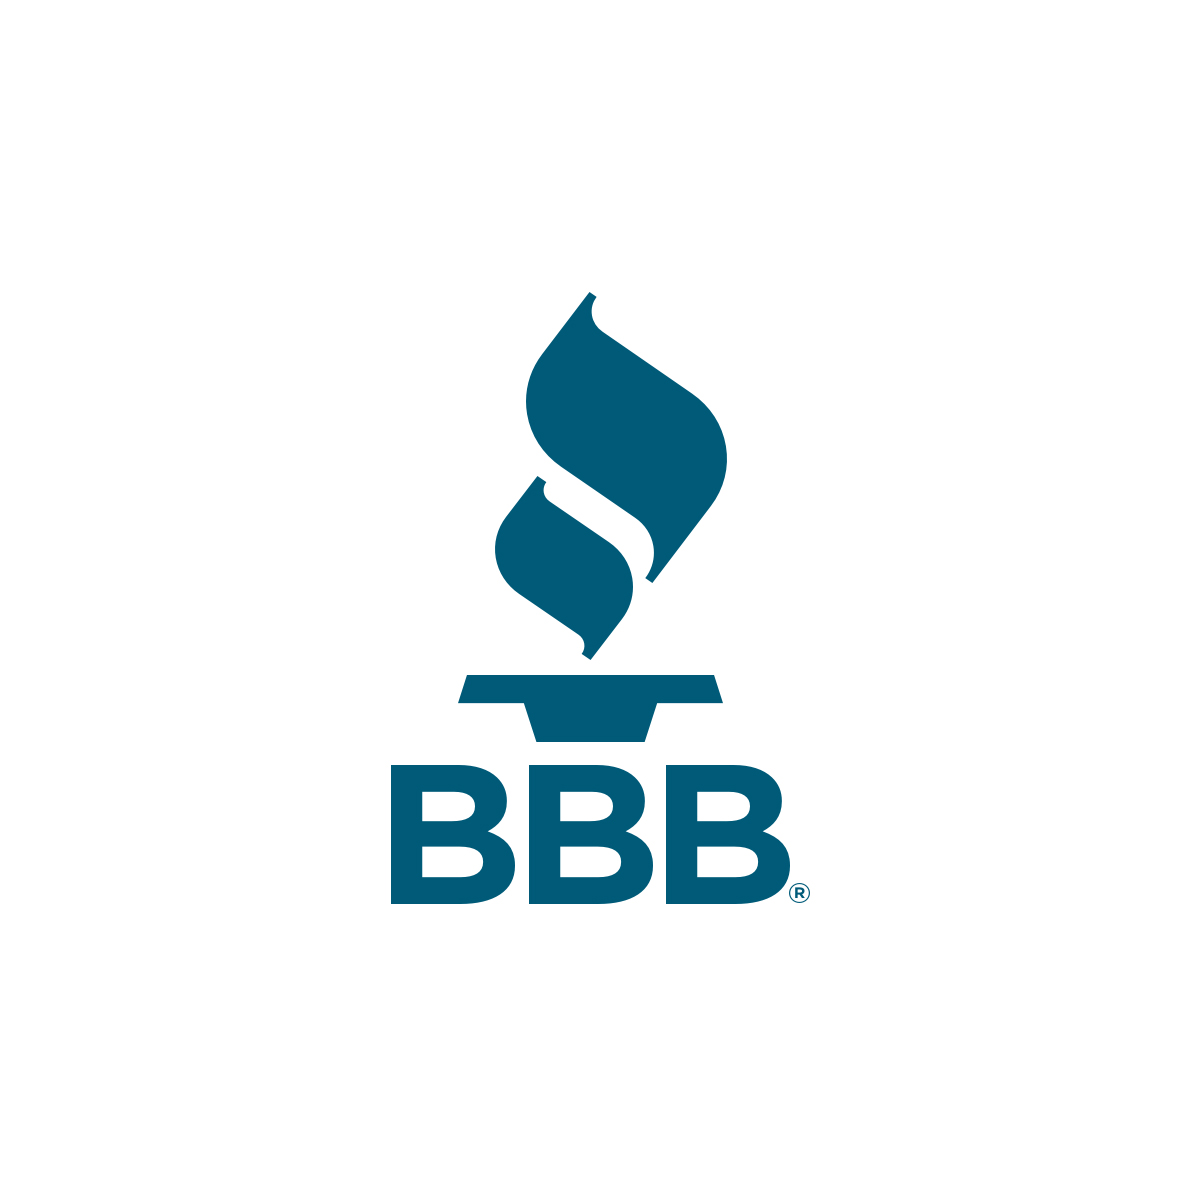 BBB: Beware of COVID-19 scams